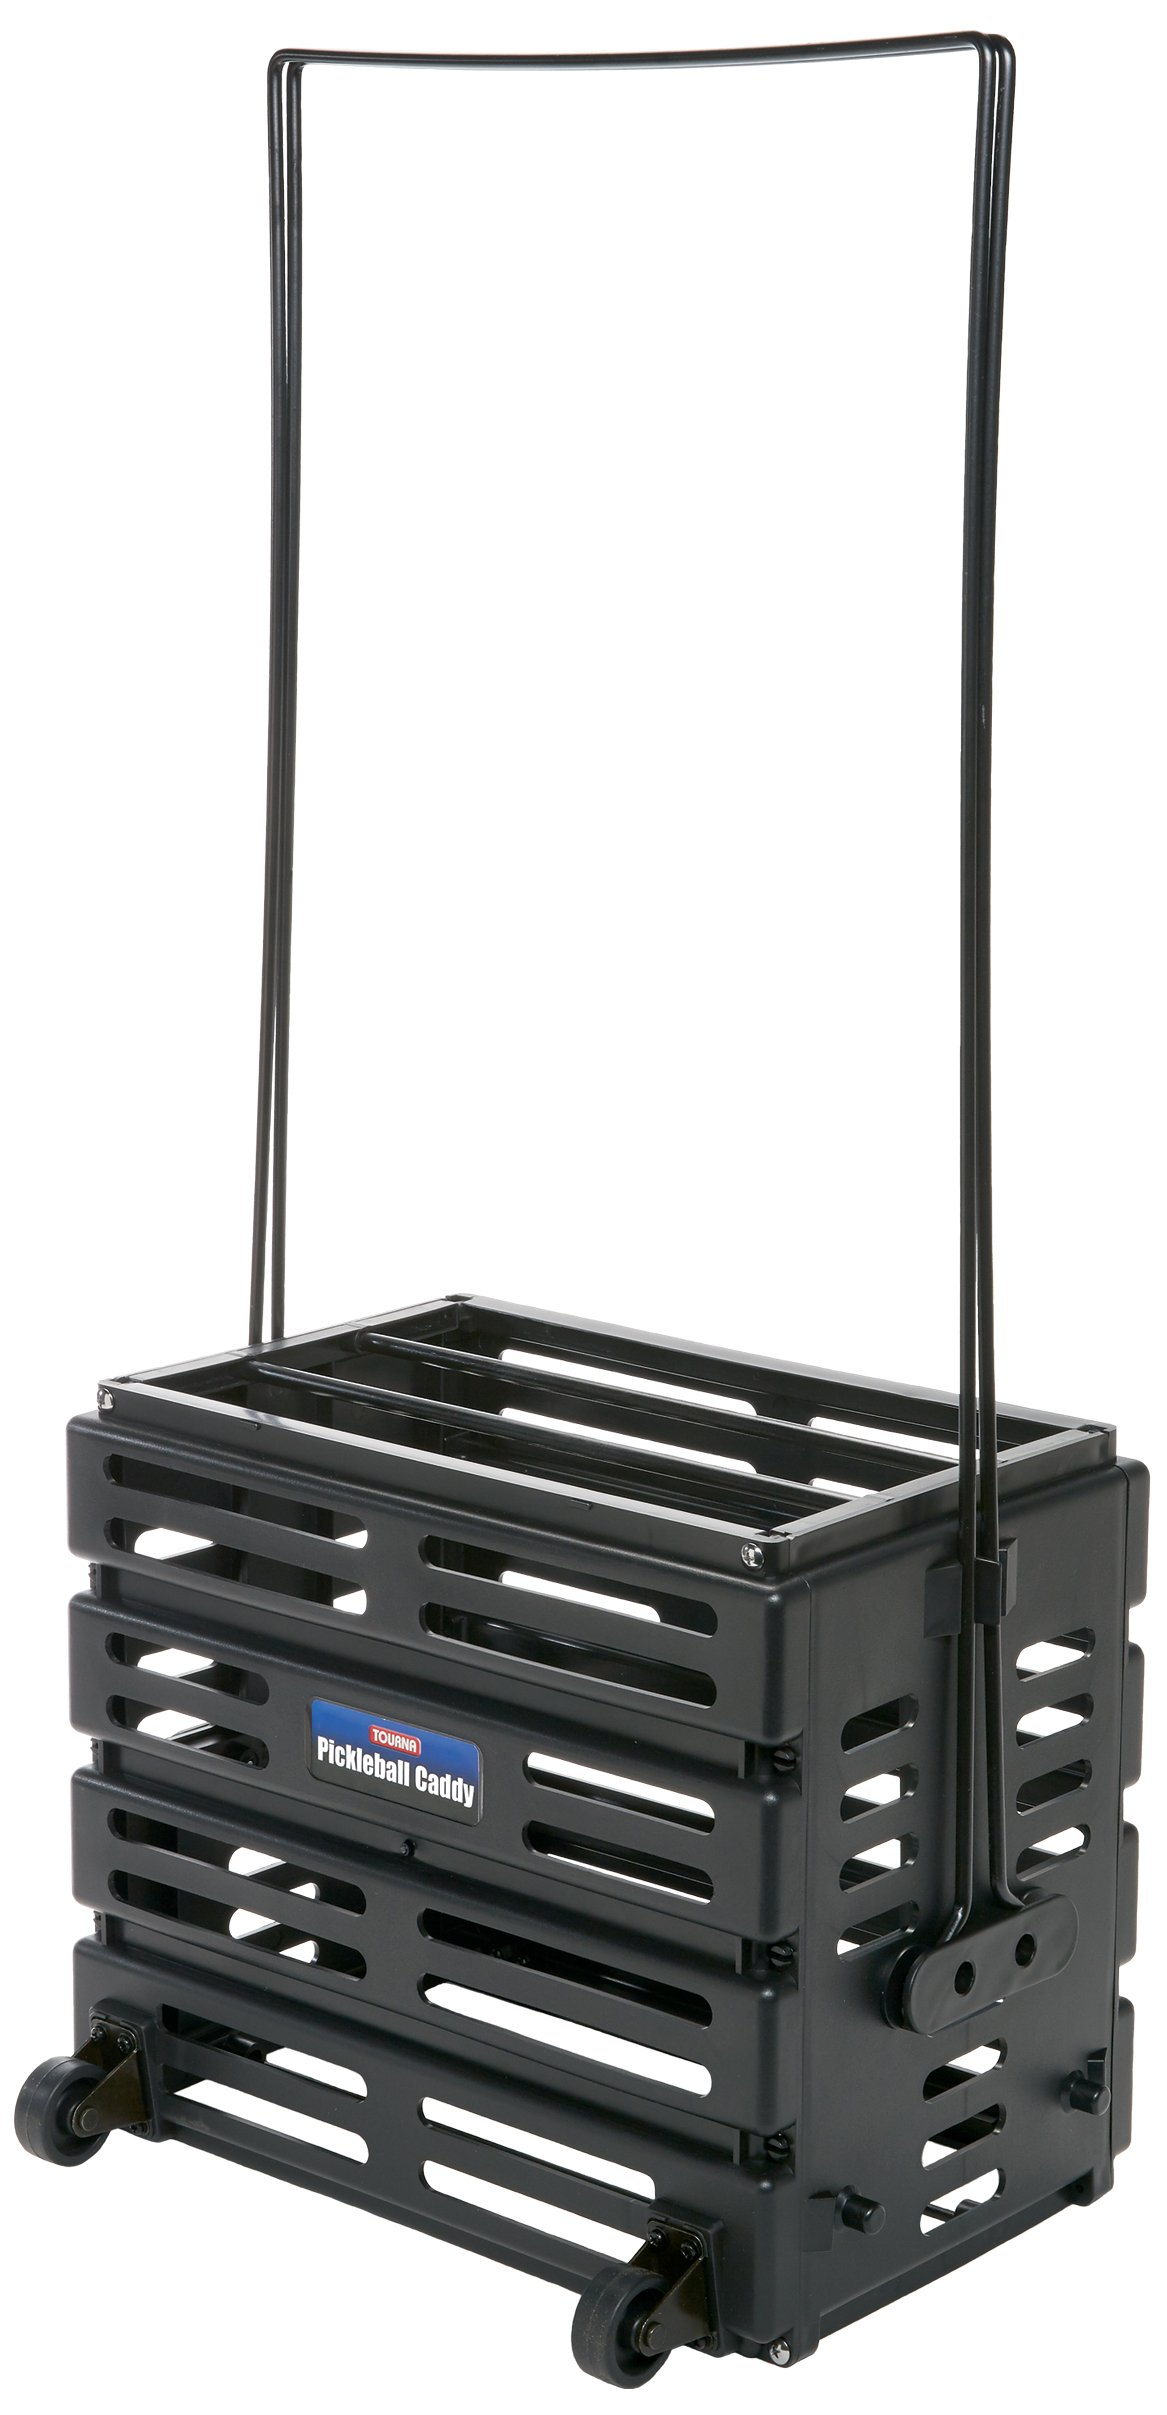 Tourna Pickleball Deluxe Caddy